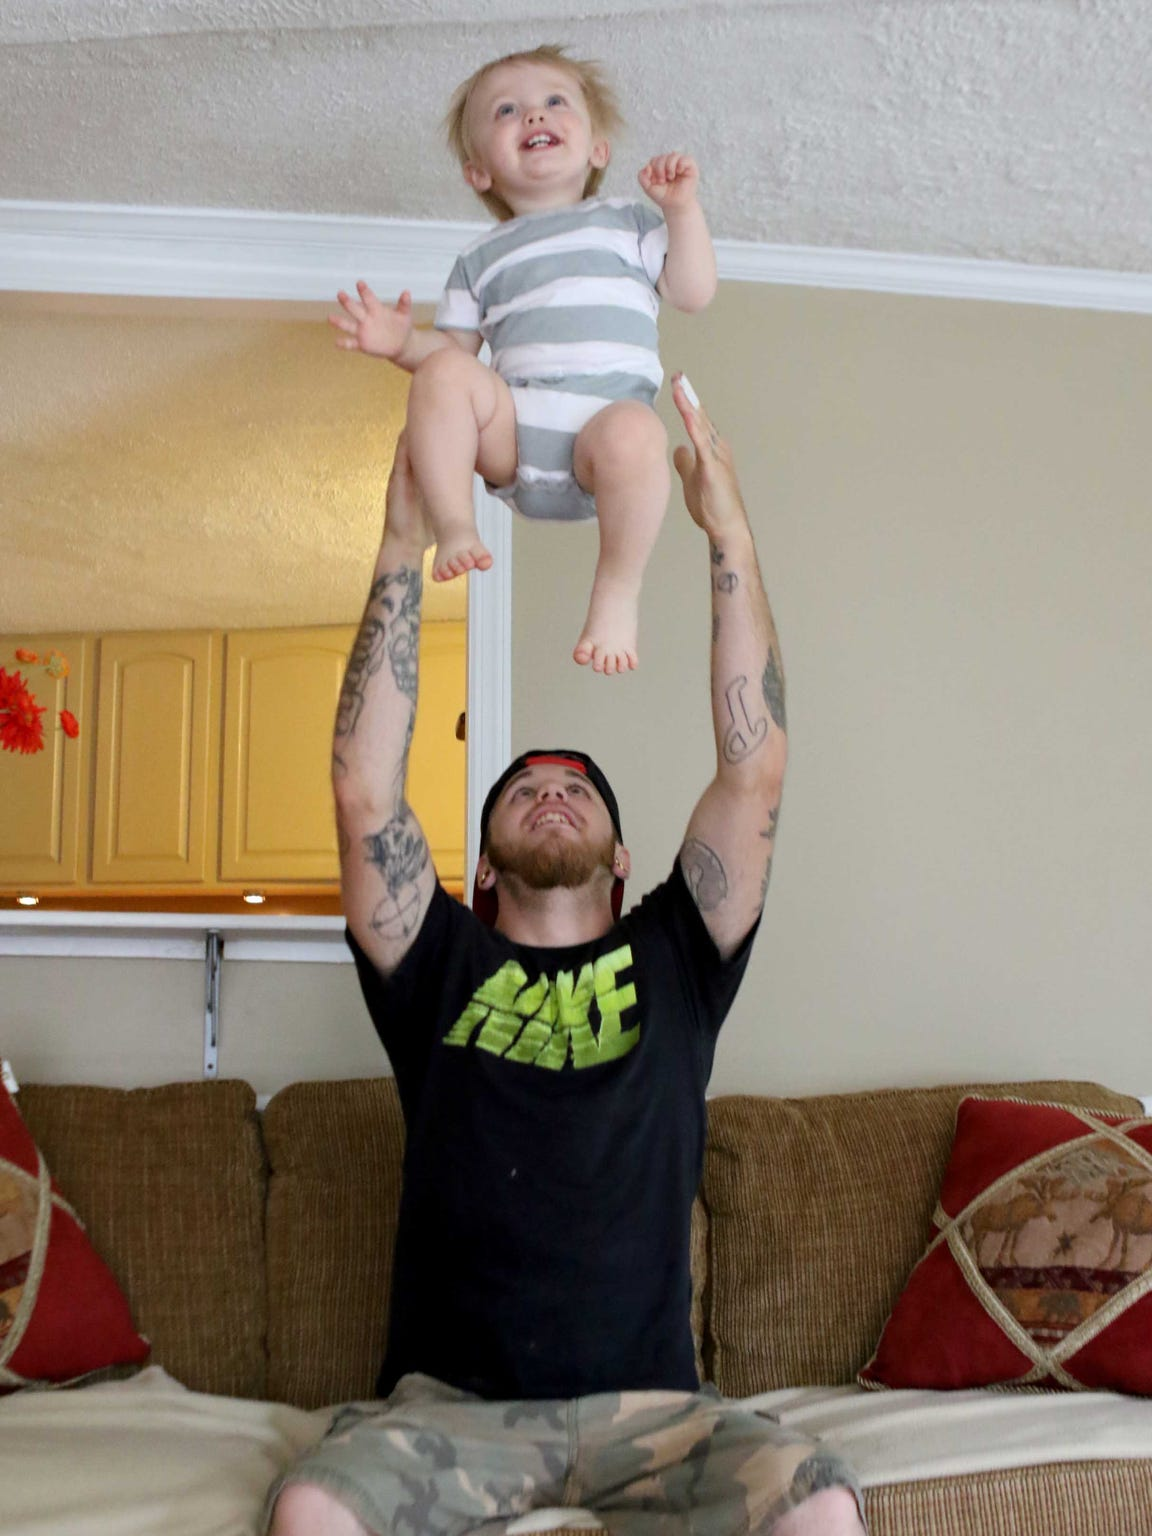 23 year-old Dillon Walker plays with his 18 month-old